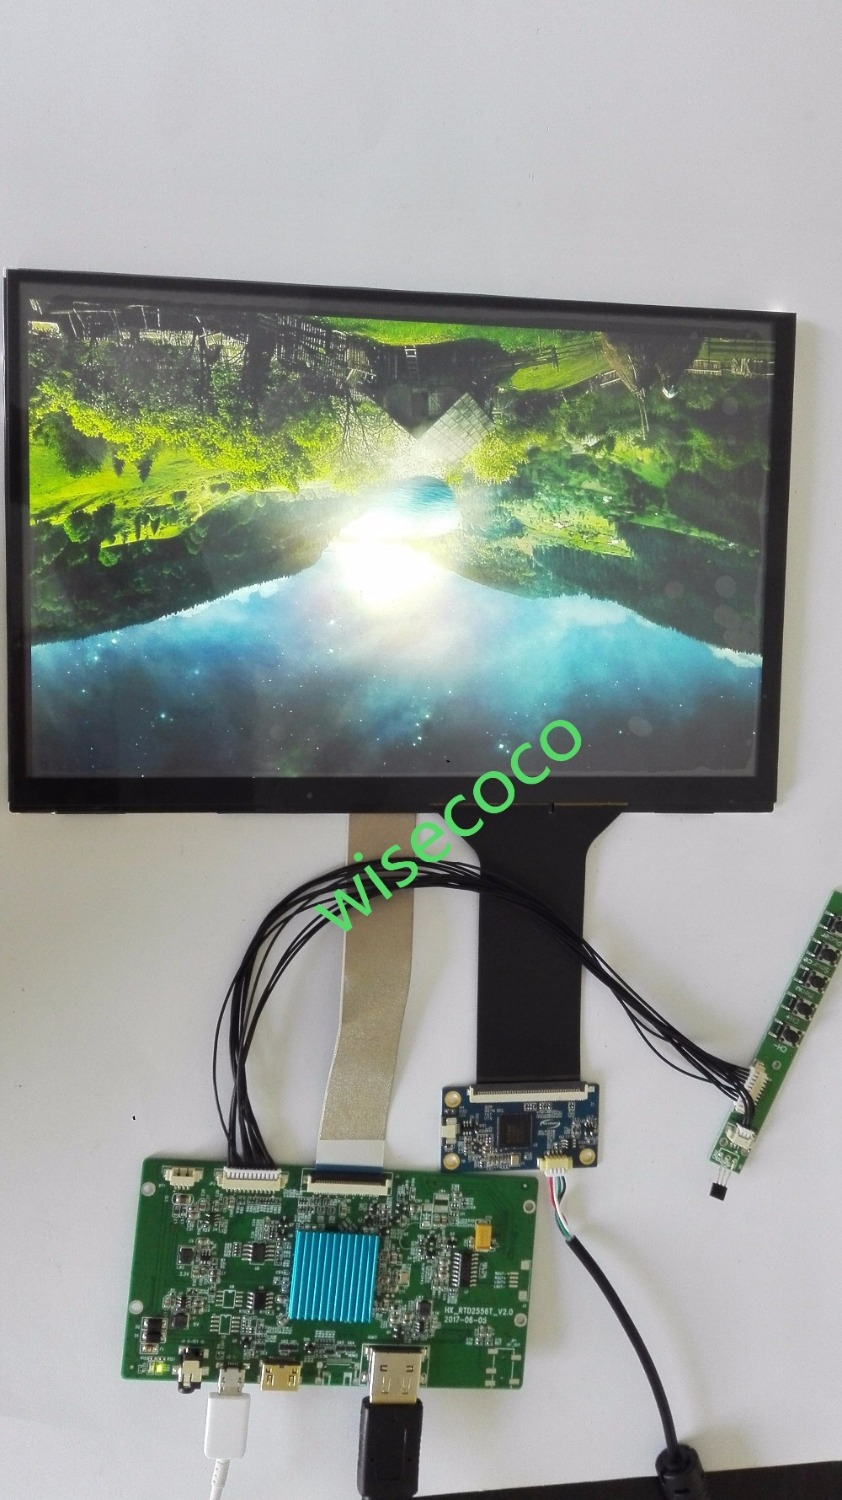 10.1 Inch 2k Tft Lcd 2560*1600 With Capactive Touch Panel Hdmi Mipi Controller Board For Diy Project 3d Printer Soft And Antislippery